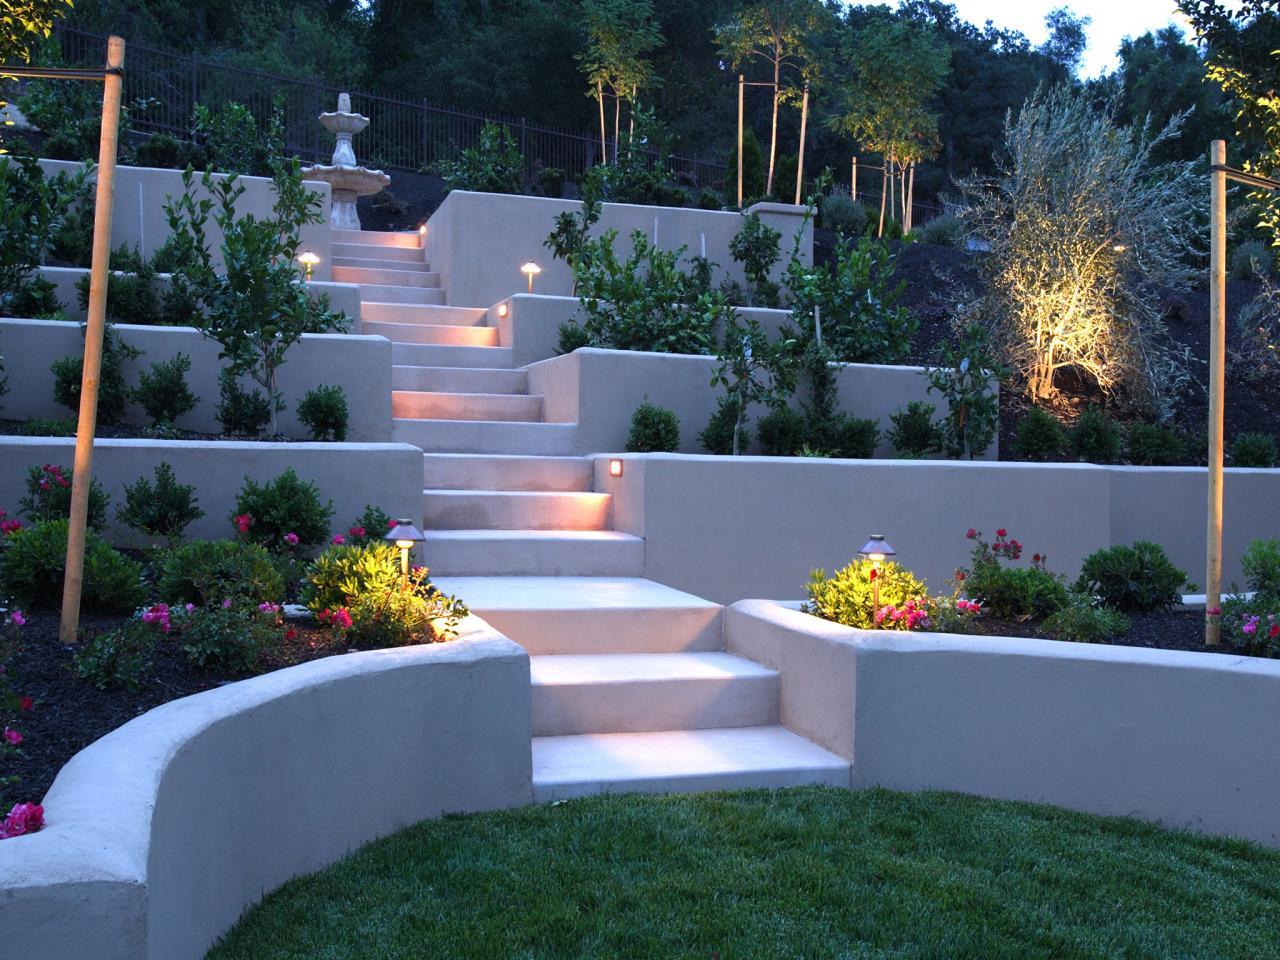 Hardscaping-Nacodoches TX Professional Landscapers & Outdoor Living Designs-We offer Landscape Design, Outdoor Patios & Pergolas, Outdoor Living Spaces, Stonescapes, Residential & Commercial Landscaping, Irrigation Installation & Repairs, Drainage Systems, Landscape Lighting, Outdoor Living Spaces, Tree Service, Lawn Service, and more.